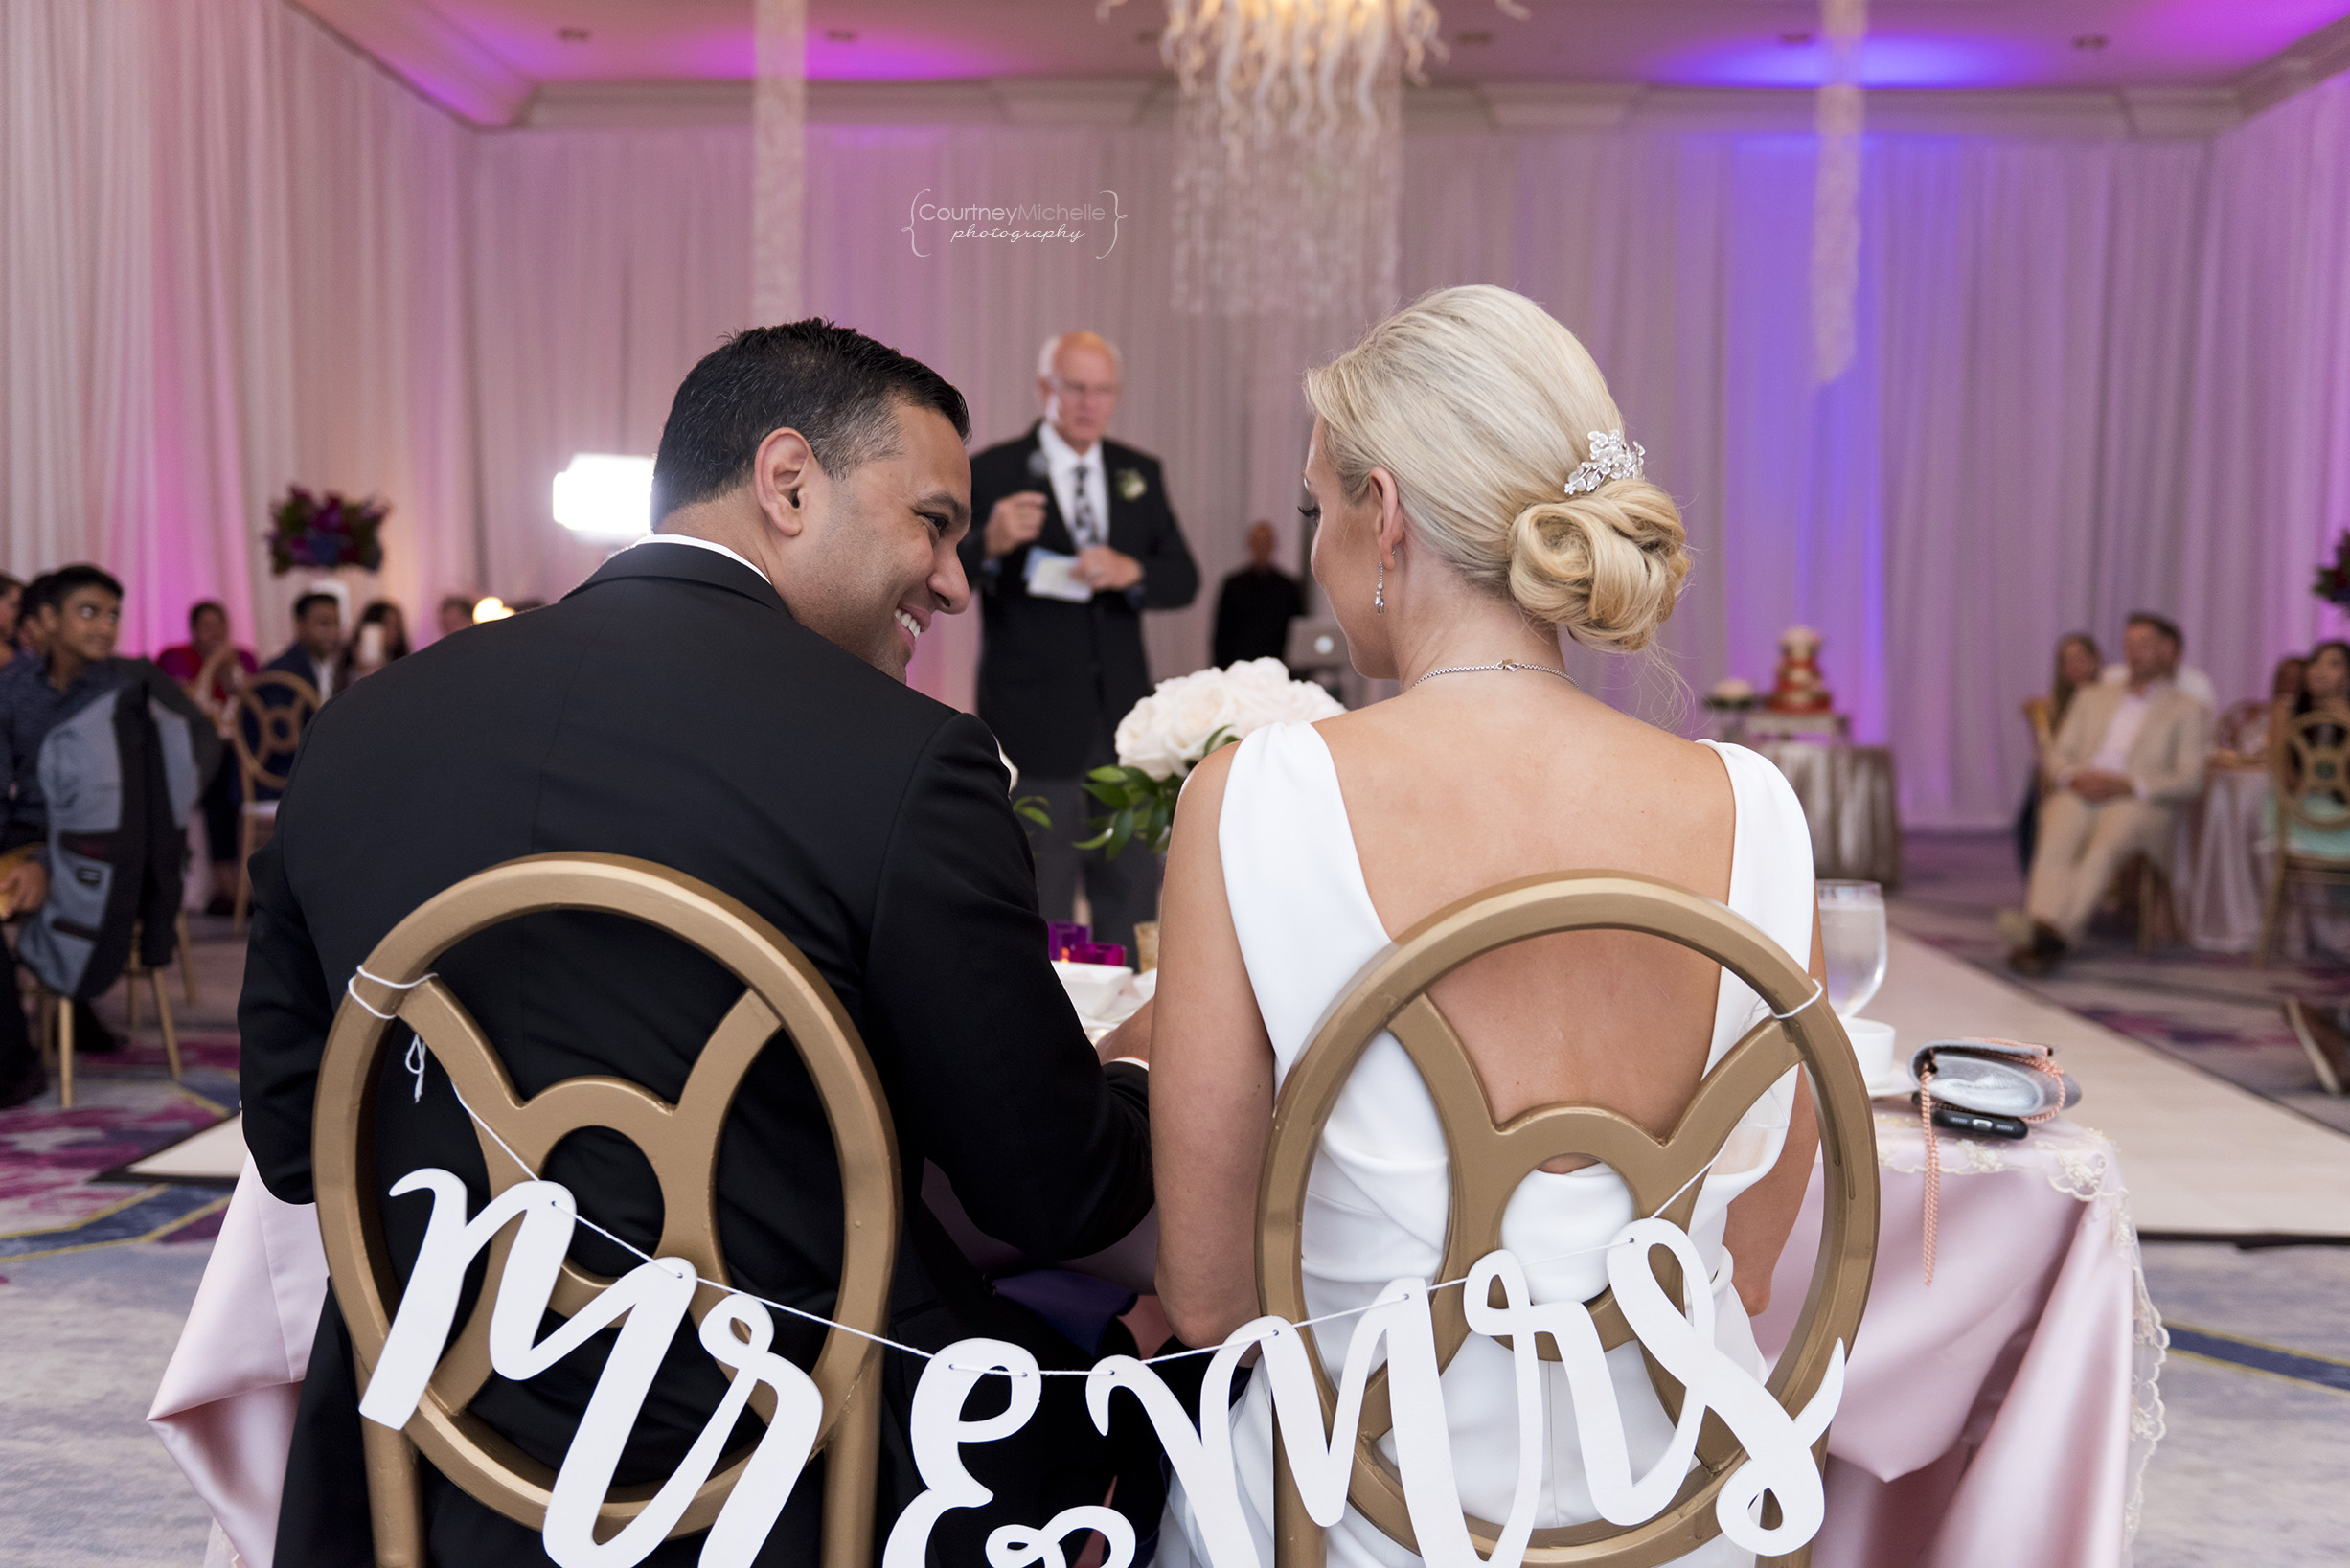 bride-and-groom-listening-to-toasts-portrait-grand-cayman-beach-wedding-photography-by-courtney-laper©CopyrightCMP-LeaAnneRaj-8313.jpg